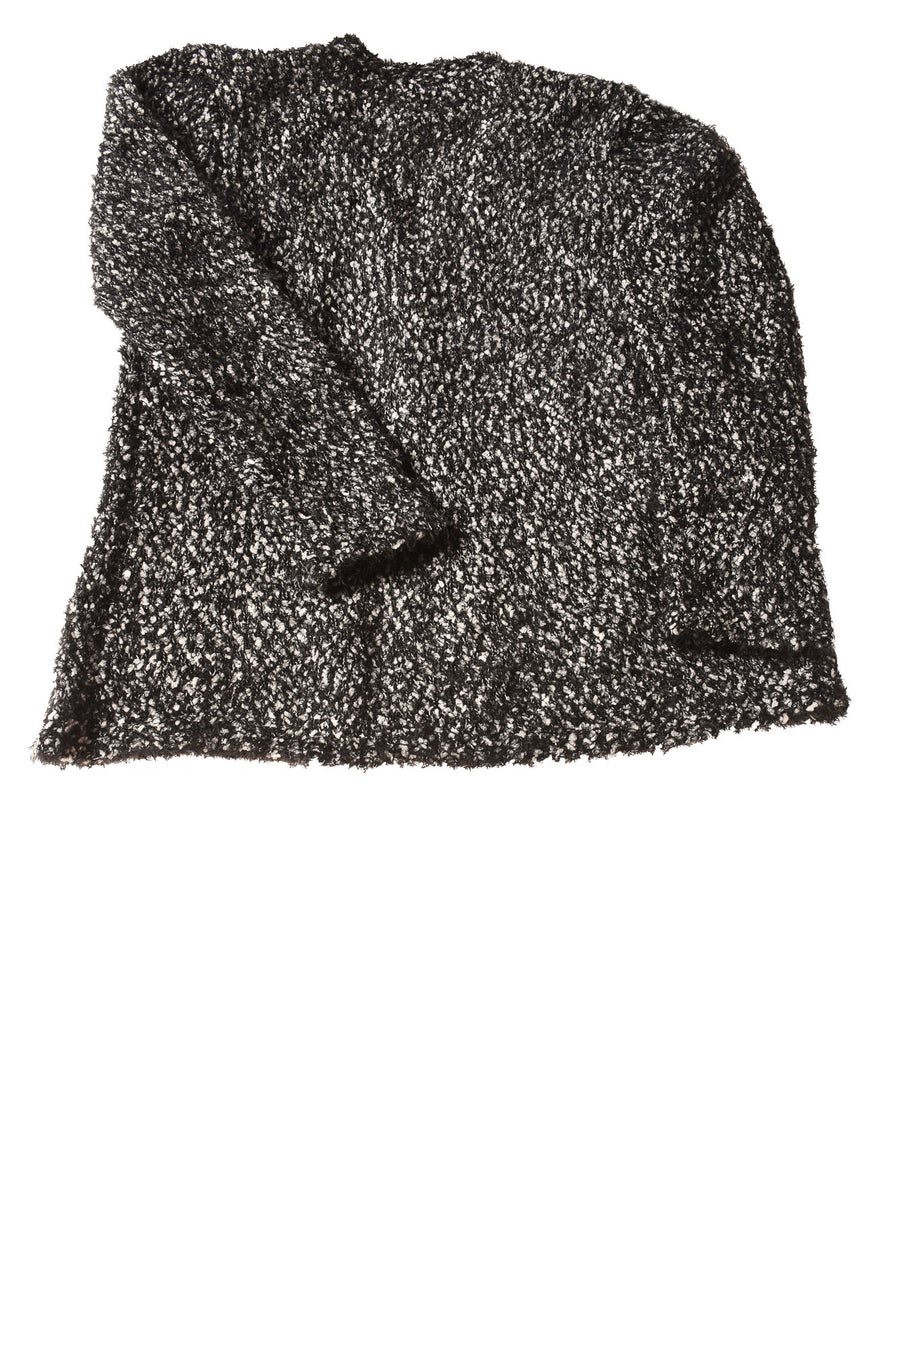 USED Style & Co. Women's Sweater Large Black & White